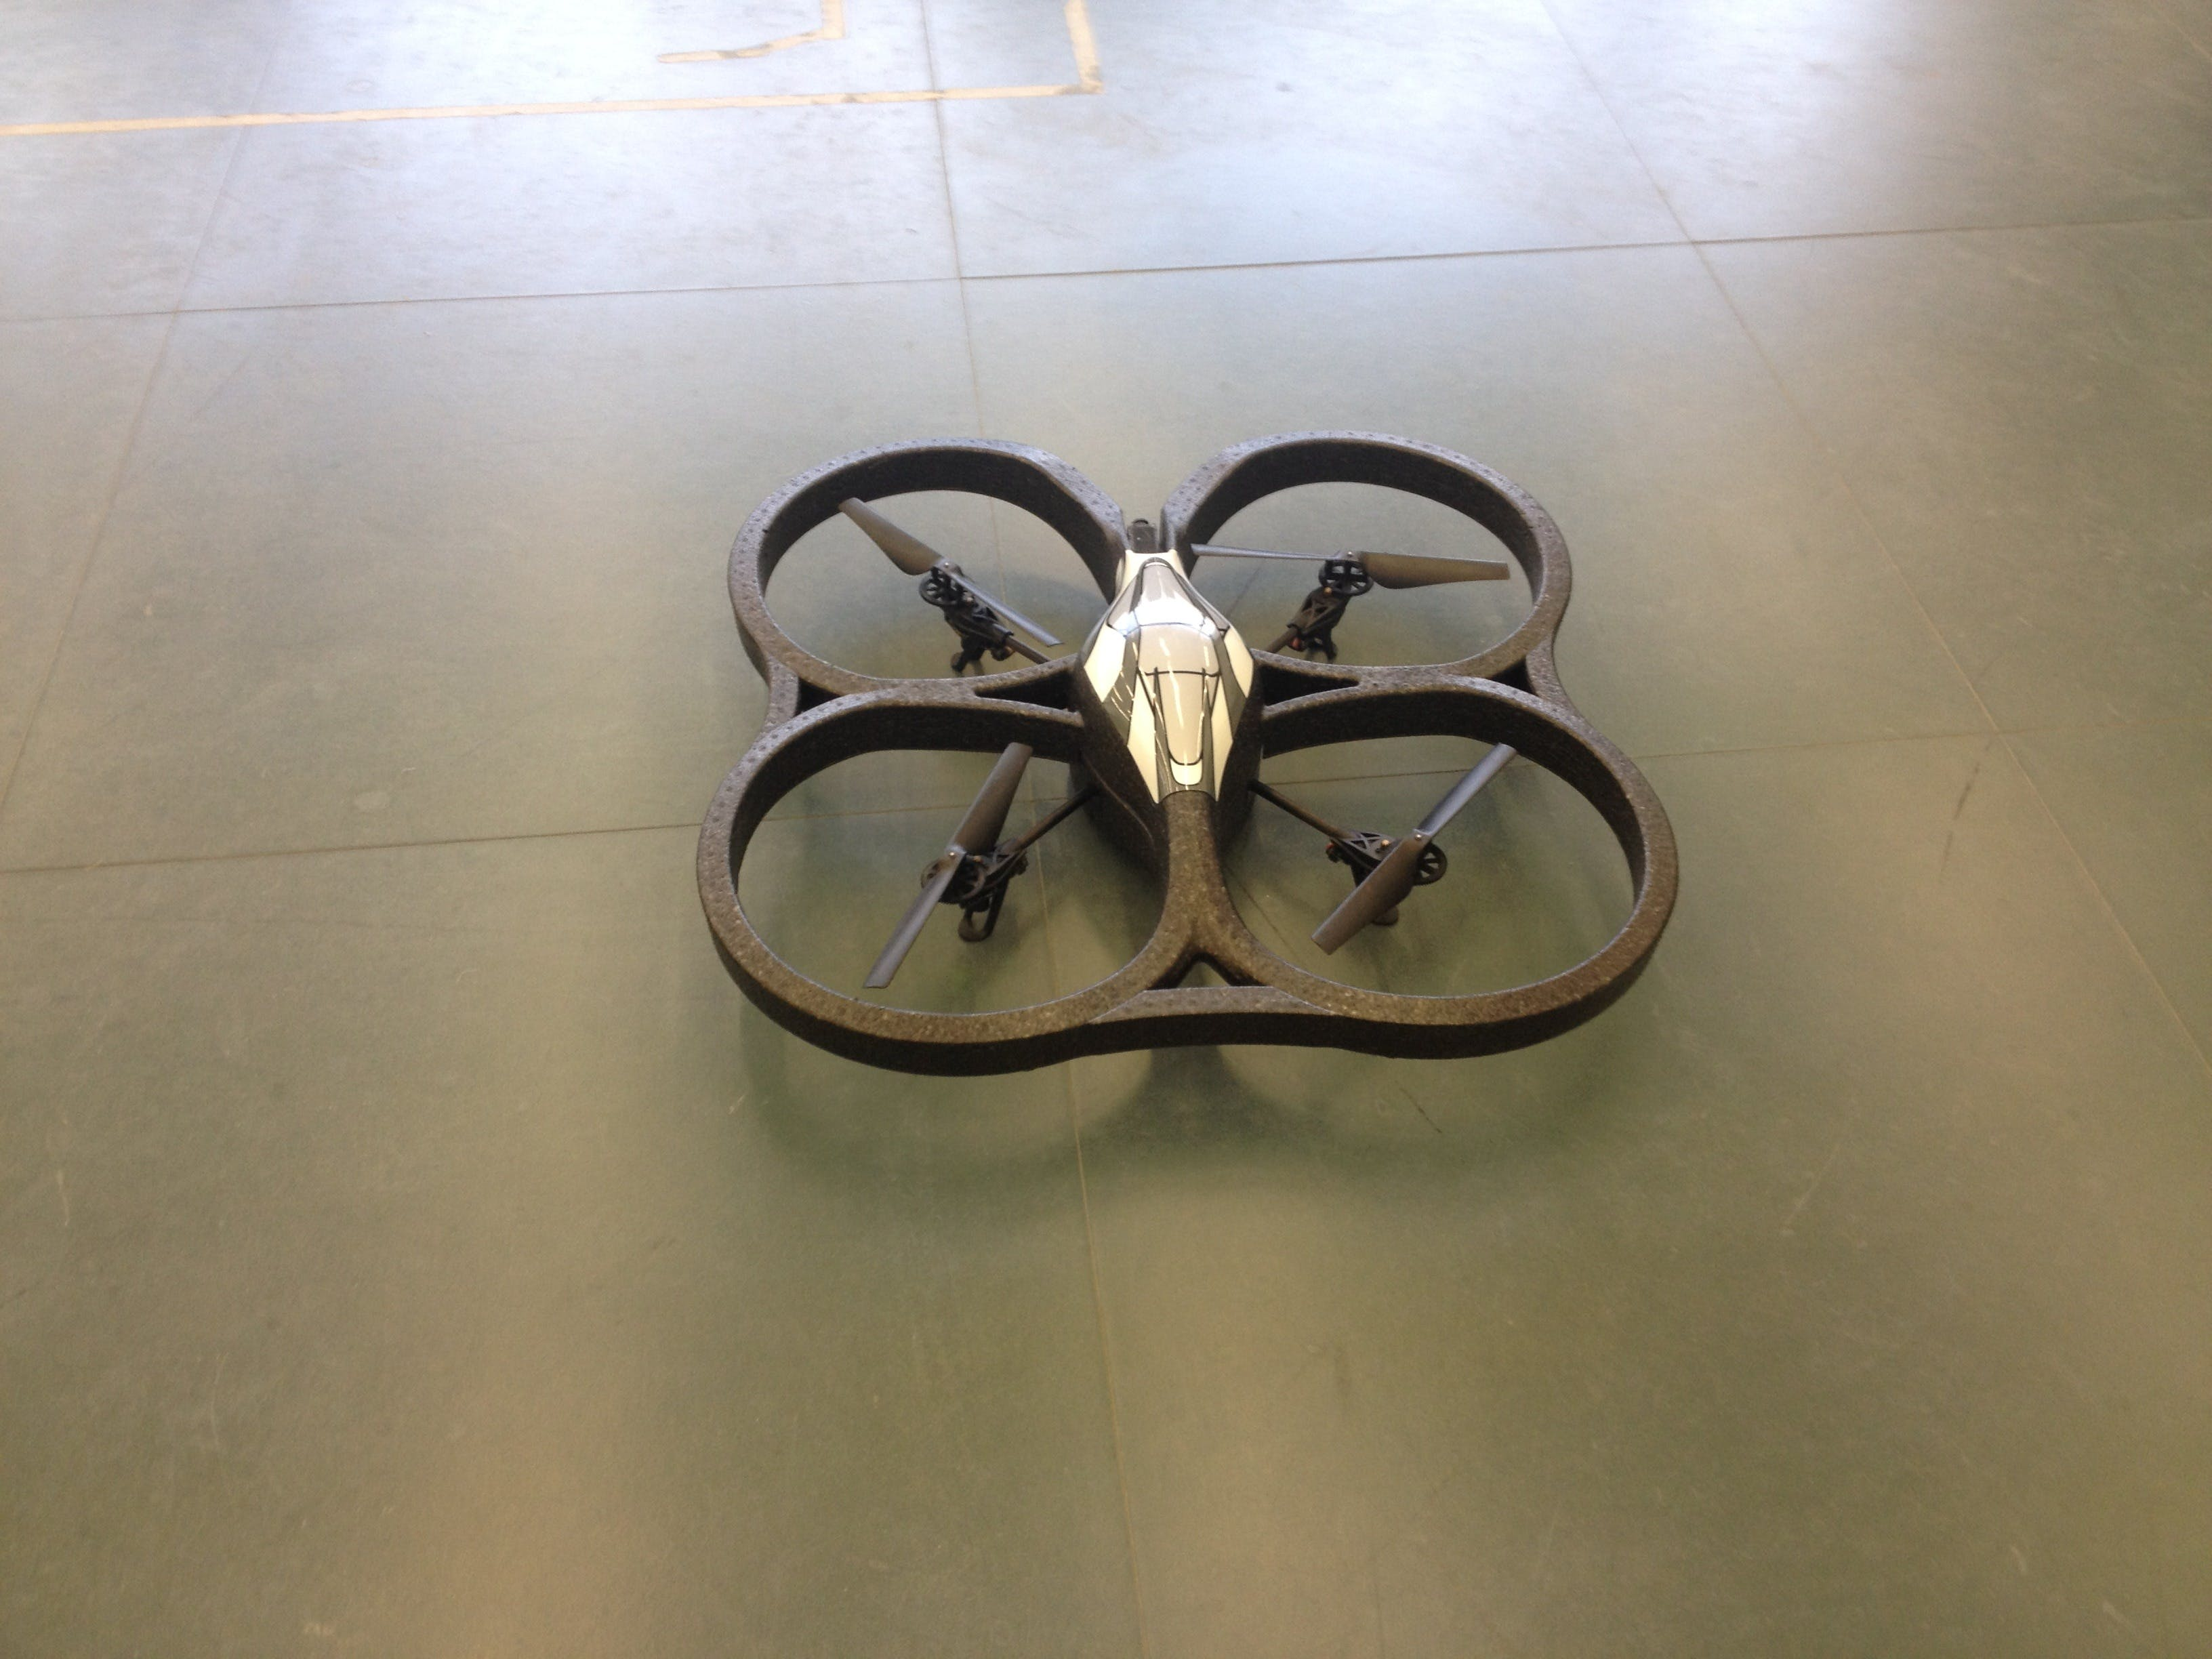 Control a Parrot AR Drone with Linino